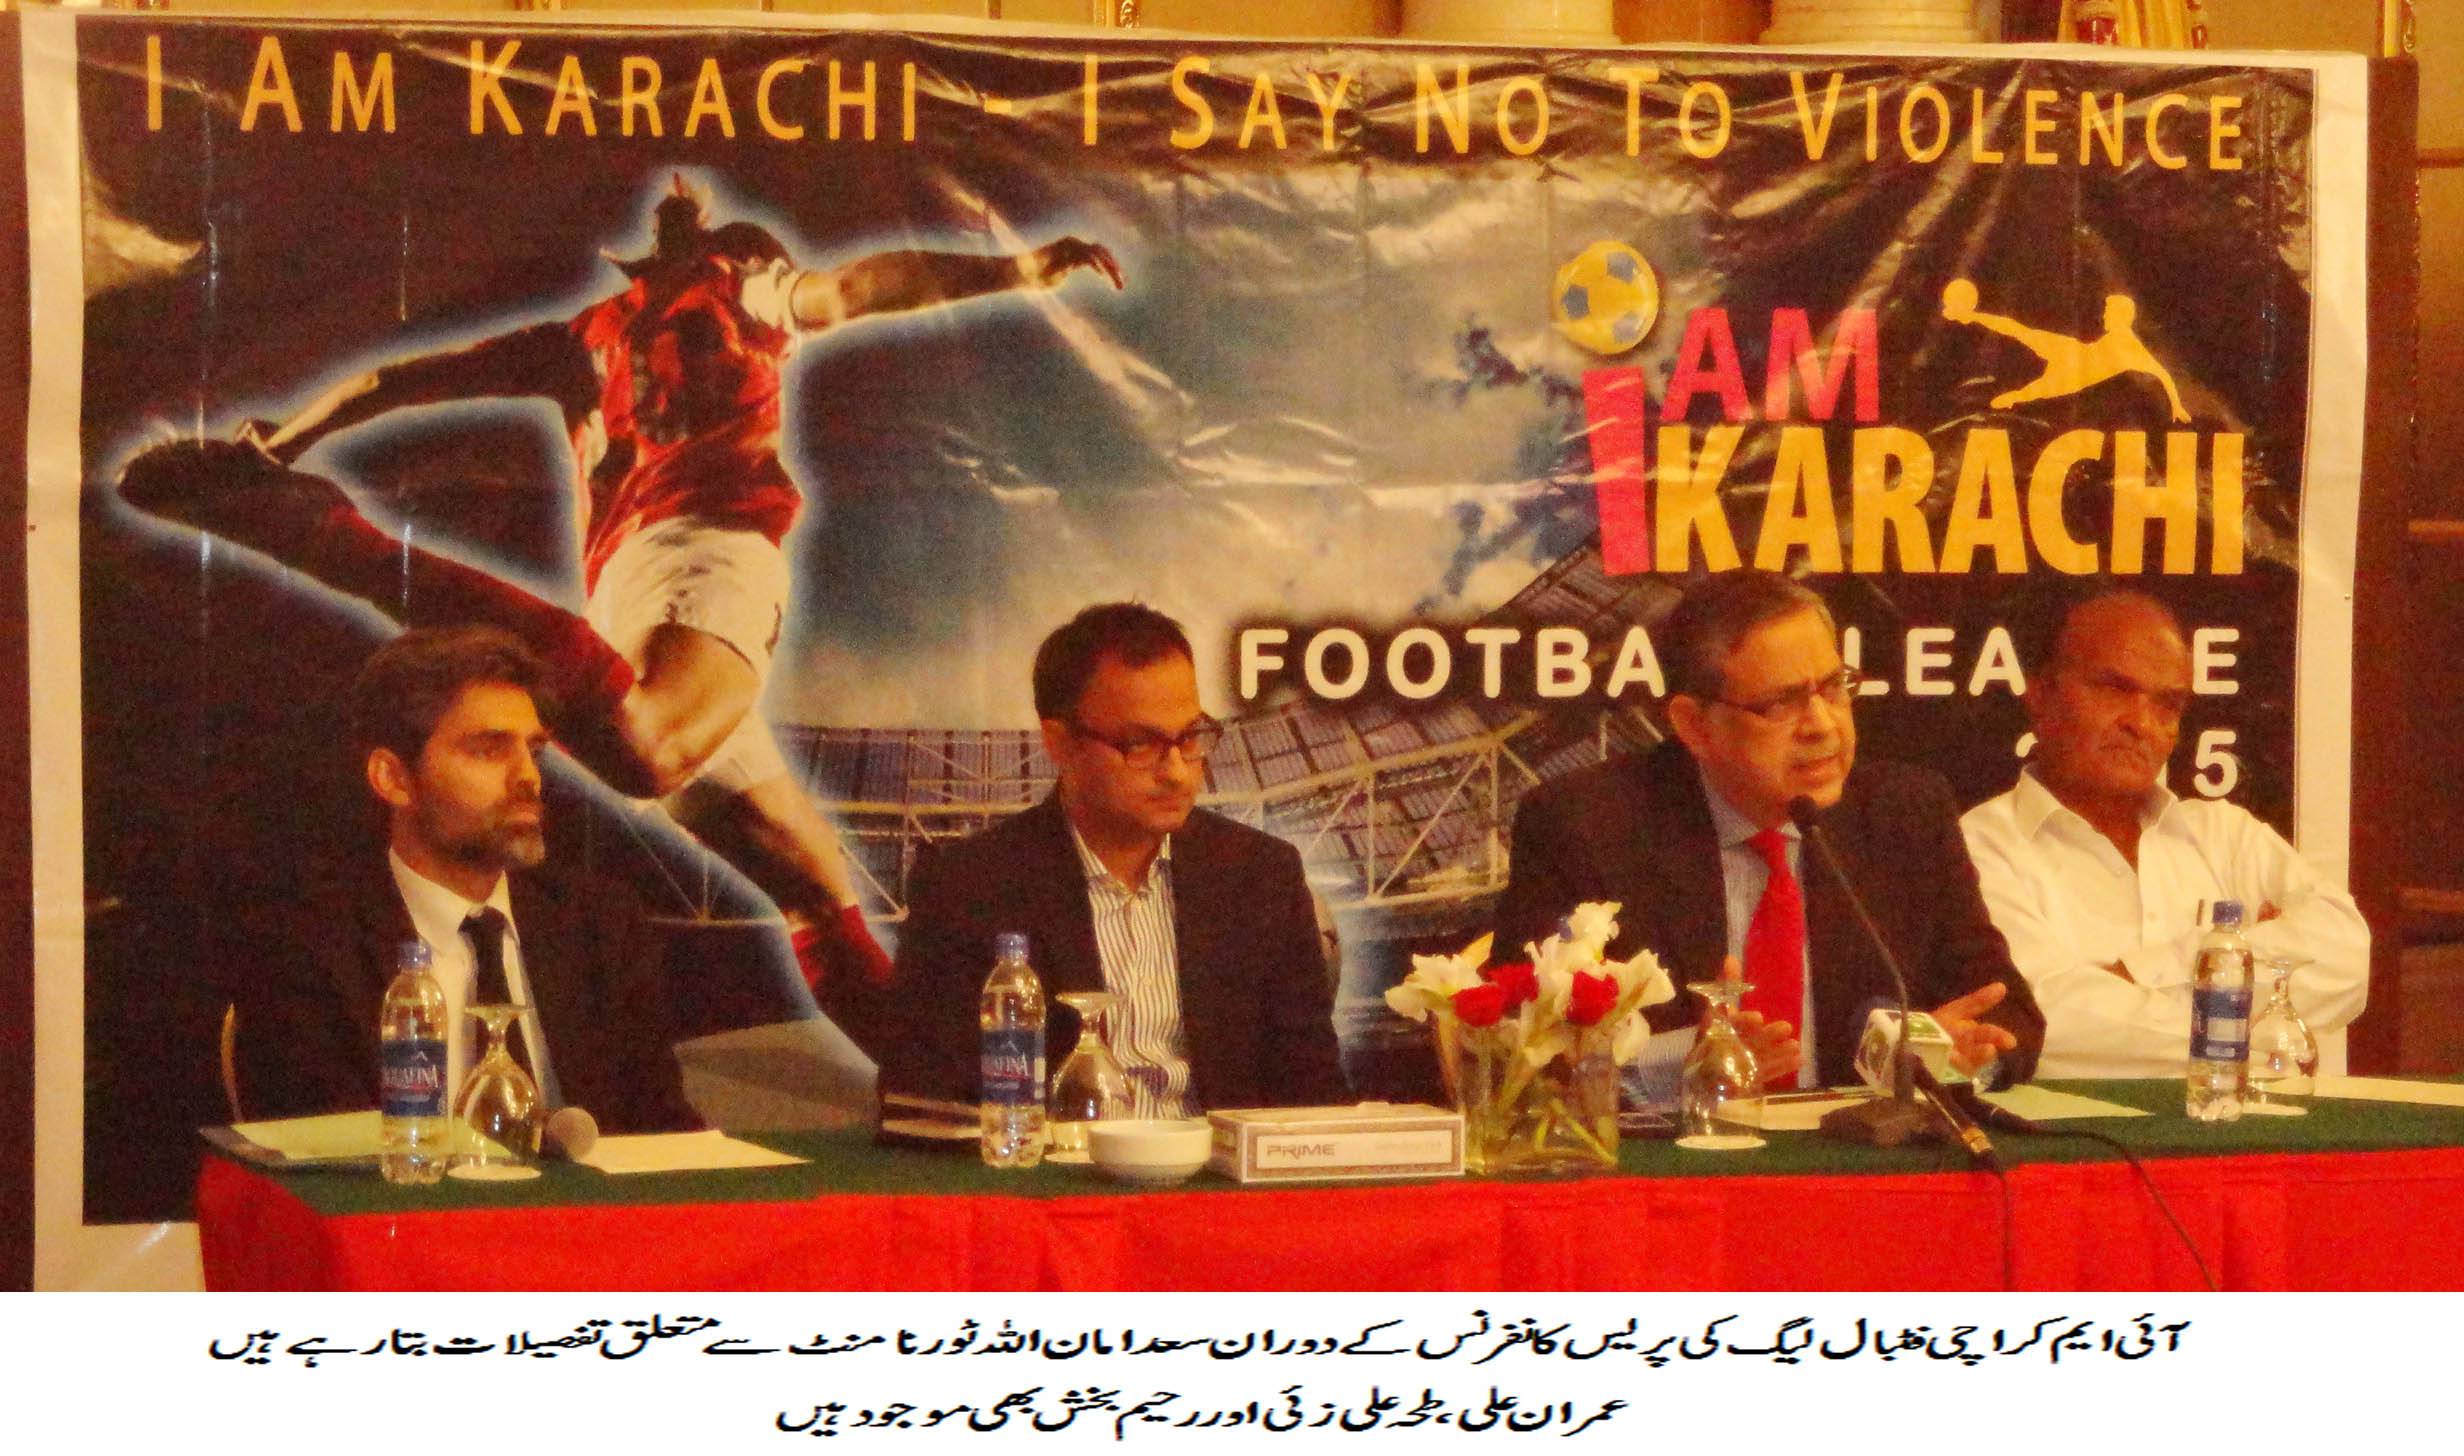 """I am Karachi"" football tournament to start next year"